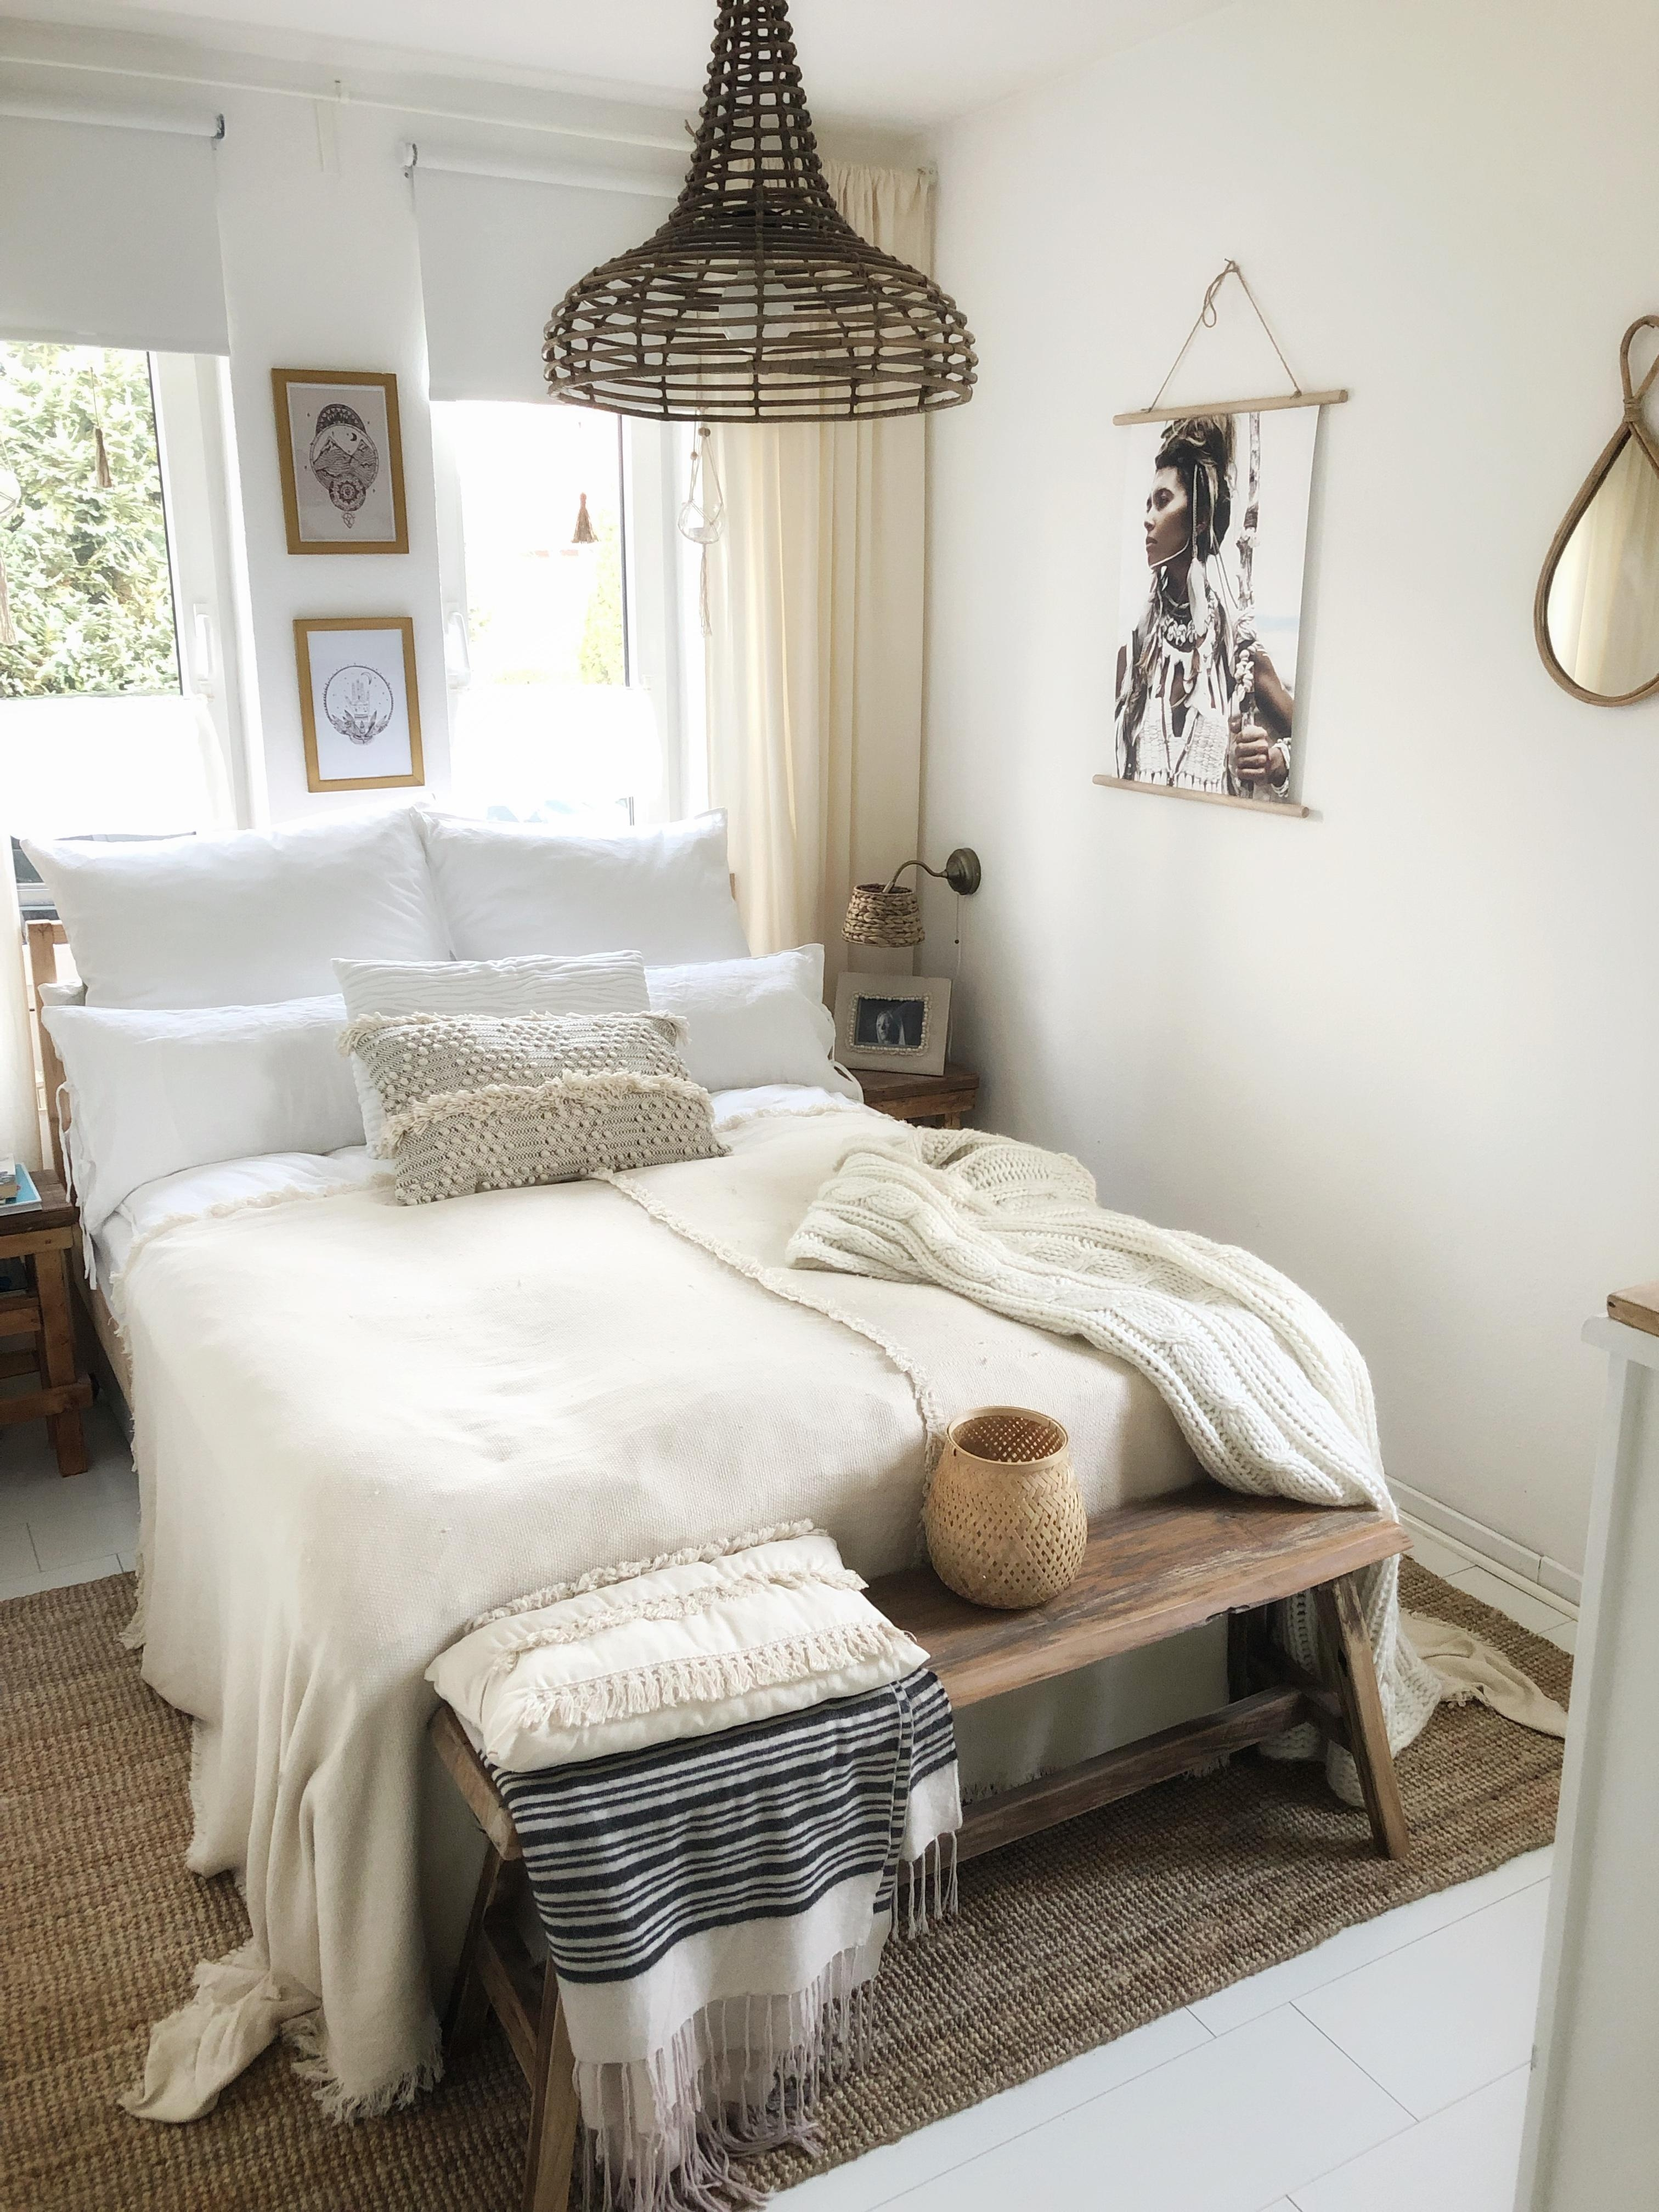 Blick ins Schlafzimmer 